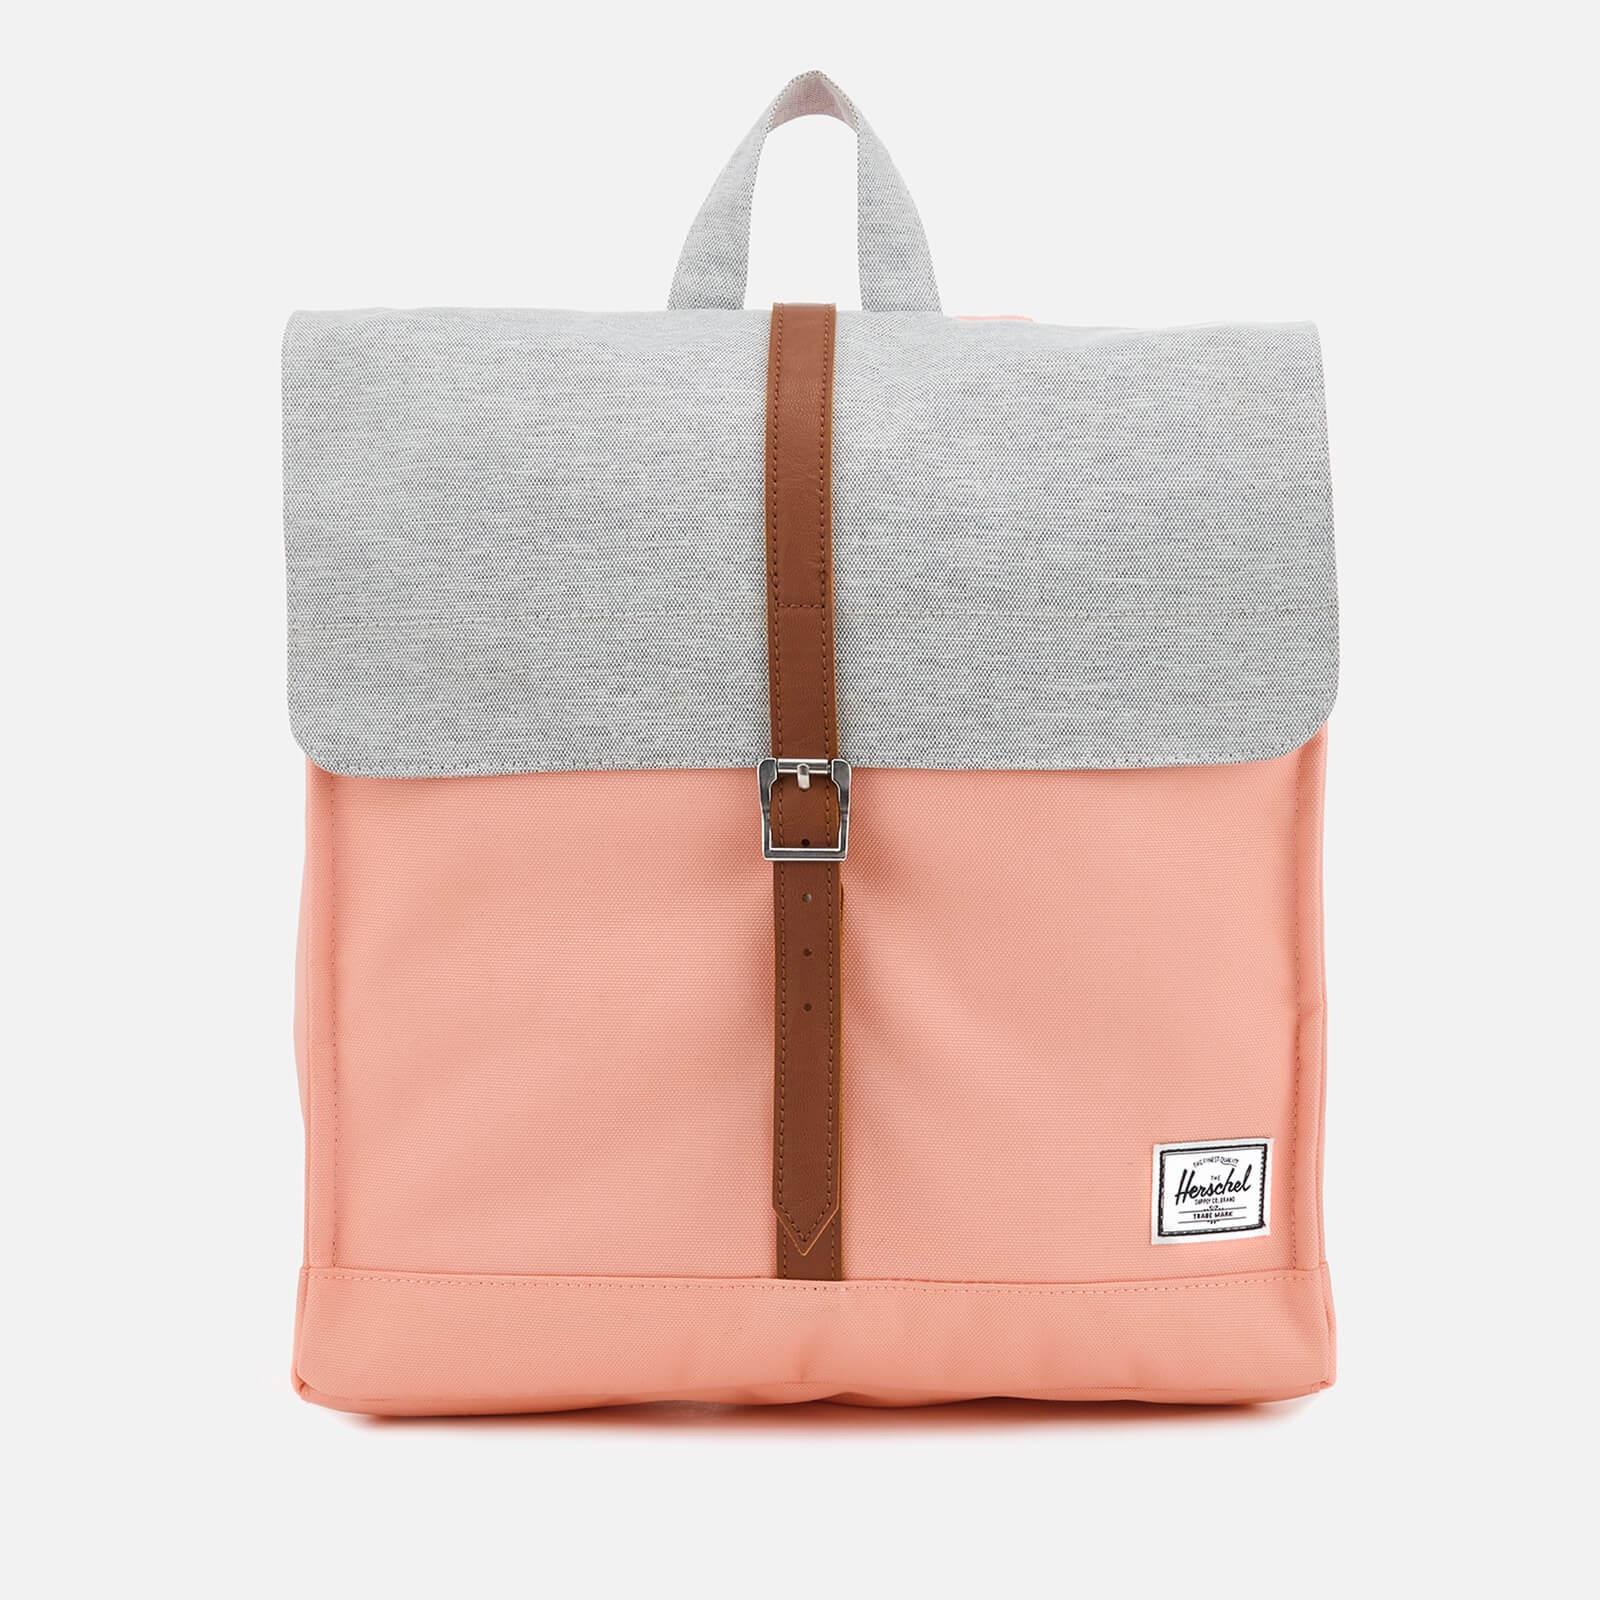 a939d0df313 Herschel Supply Co. City Mid-volume Backpack - Lyst